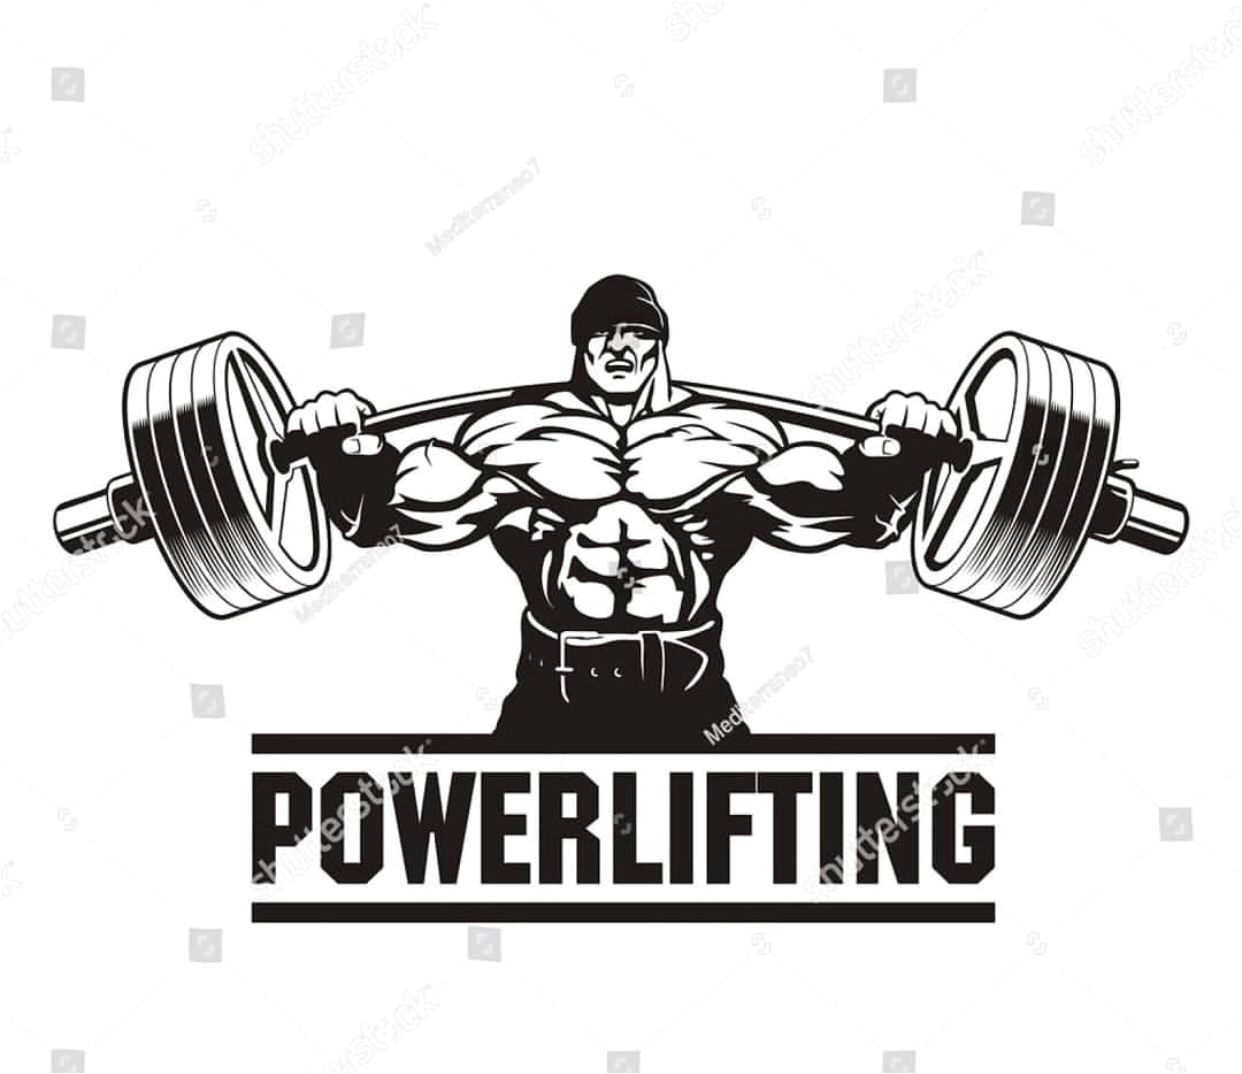 bodybuilding logo bench press powerlifting squats athlete muscle searching